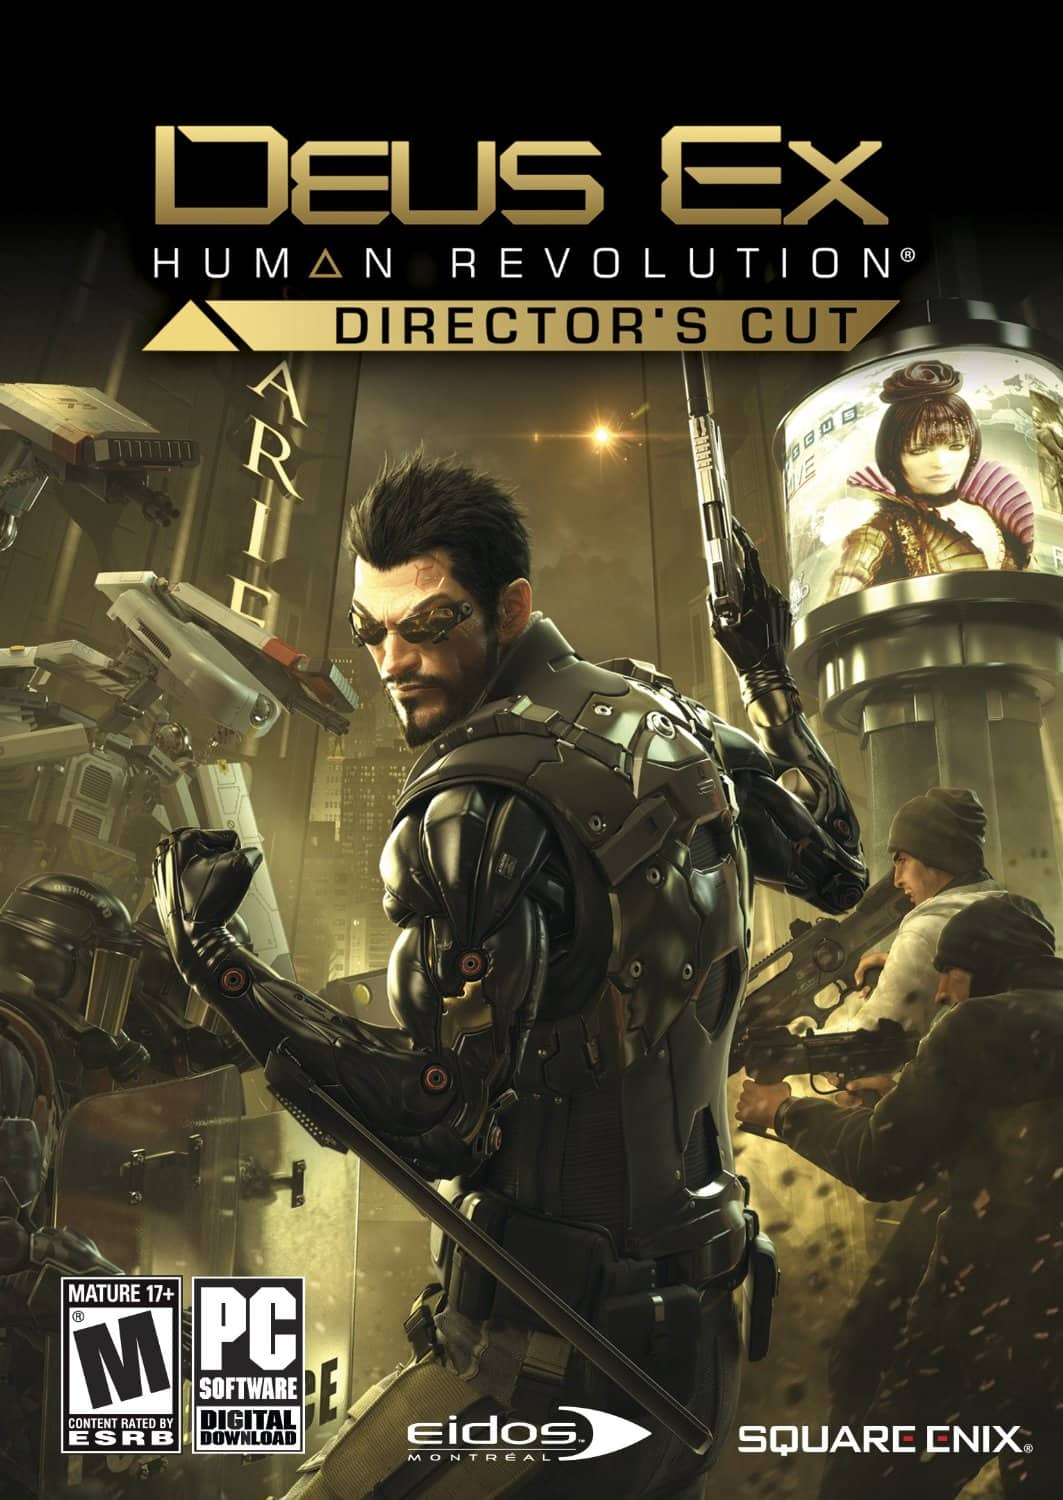 PCDD Games: Deus Ex: Human Revolution (Director's Cut) $5, Hitman: Contracts, Legacy of Kain: Soul Reaver, Just Cause $1.75 & More via Amazon